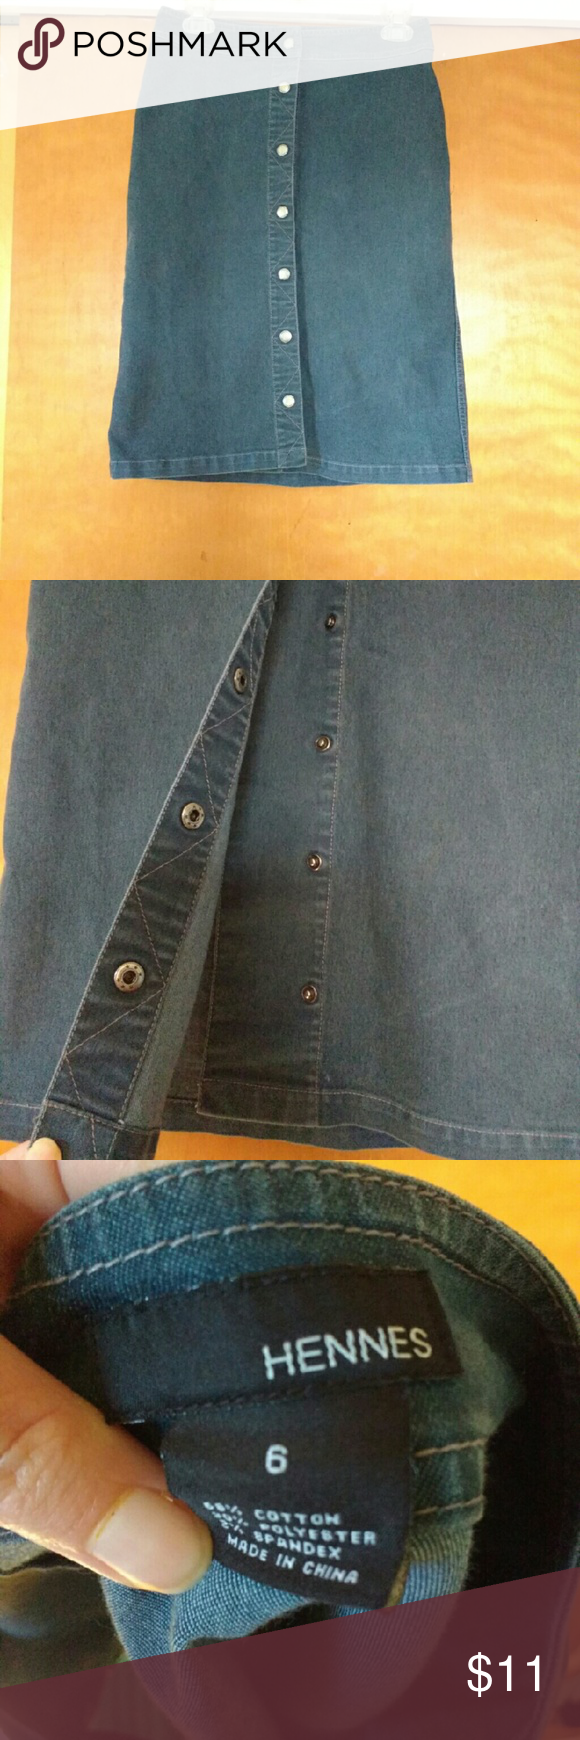 Comfy stretch denim-look skirt! Very comfortable faux stretch denim midi skirt from H&M. Has usable snaps all the way up the front. Has been worn twice and is in amazing condition. All items come from a smoke and pet-free home. H&M Skirts